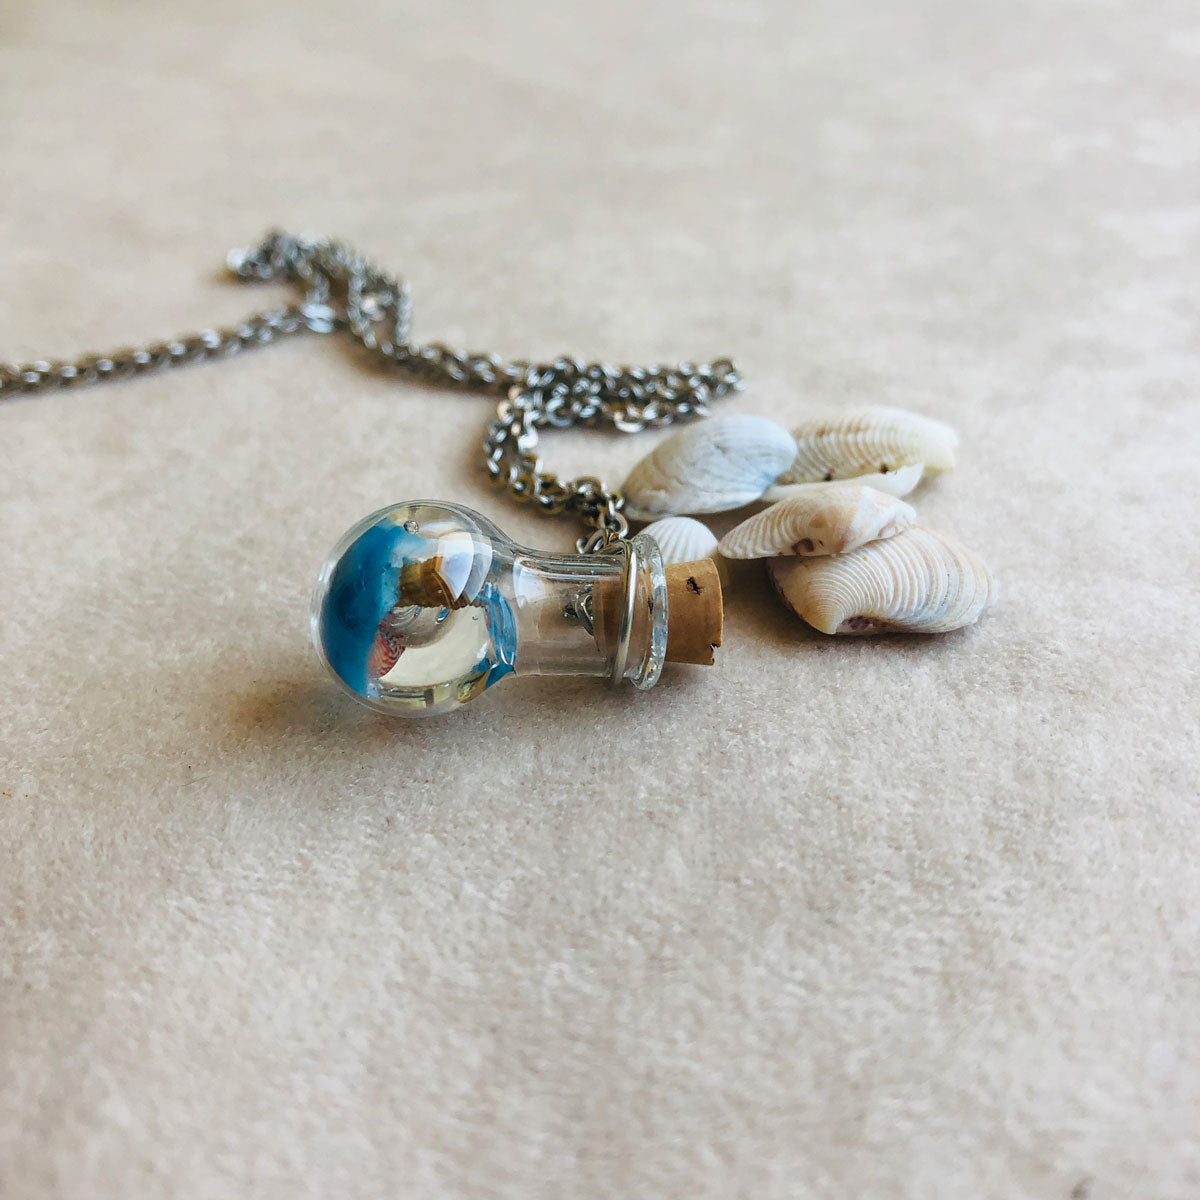 Summer | Sea shells in a light bulb bottle